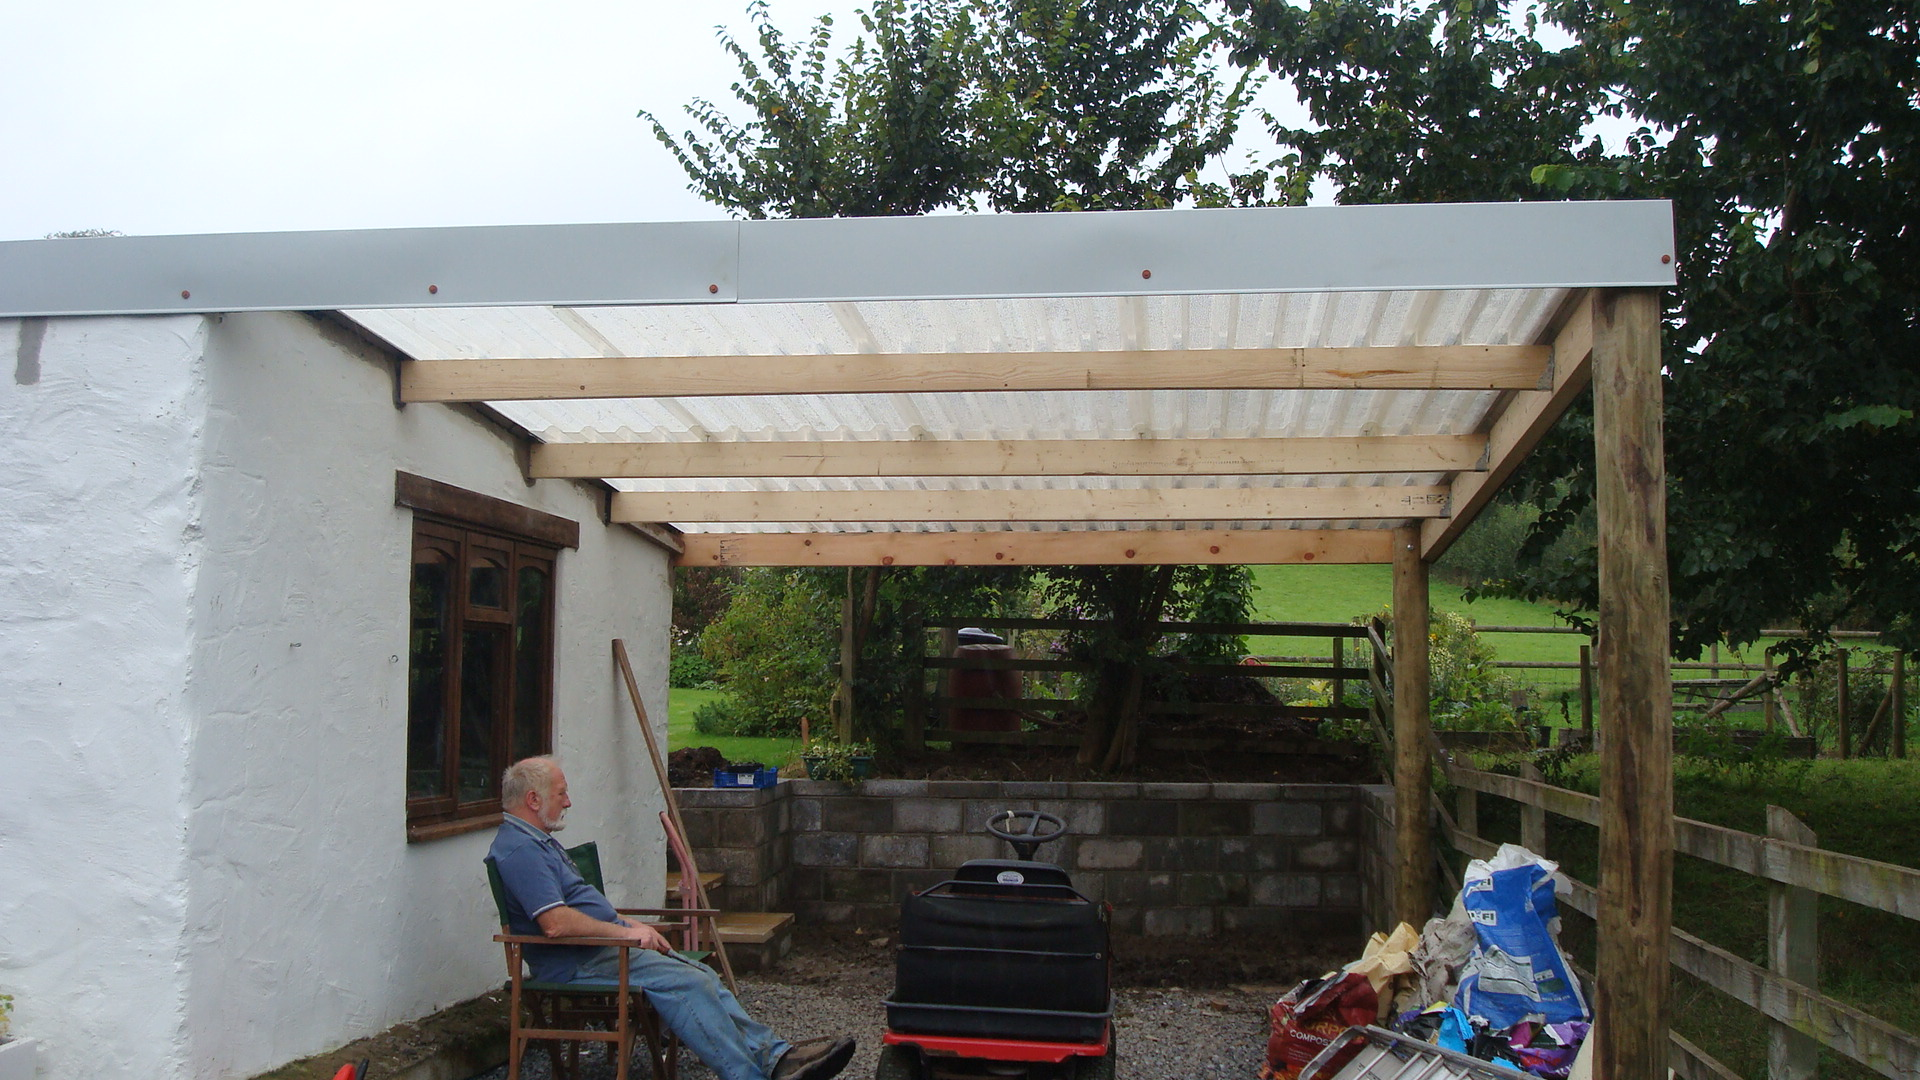 September 26 new garden shelter lletty 39 s blog for Small garden shelter